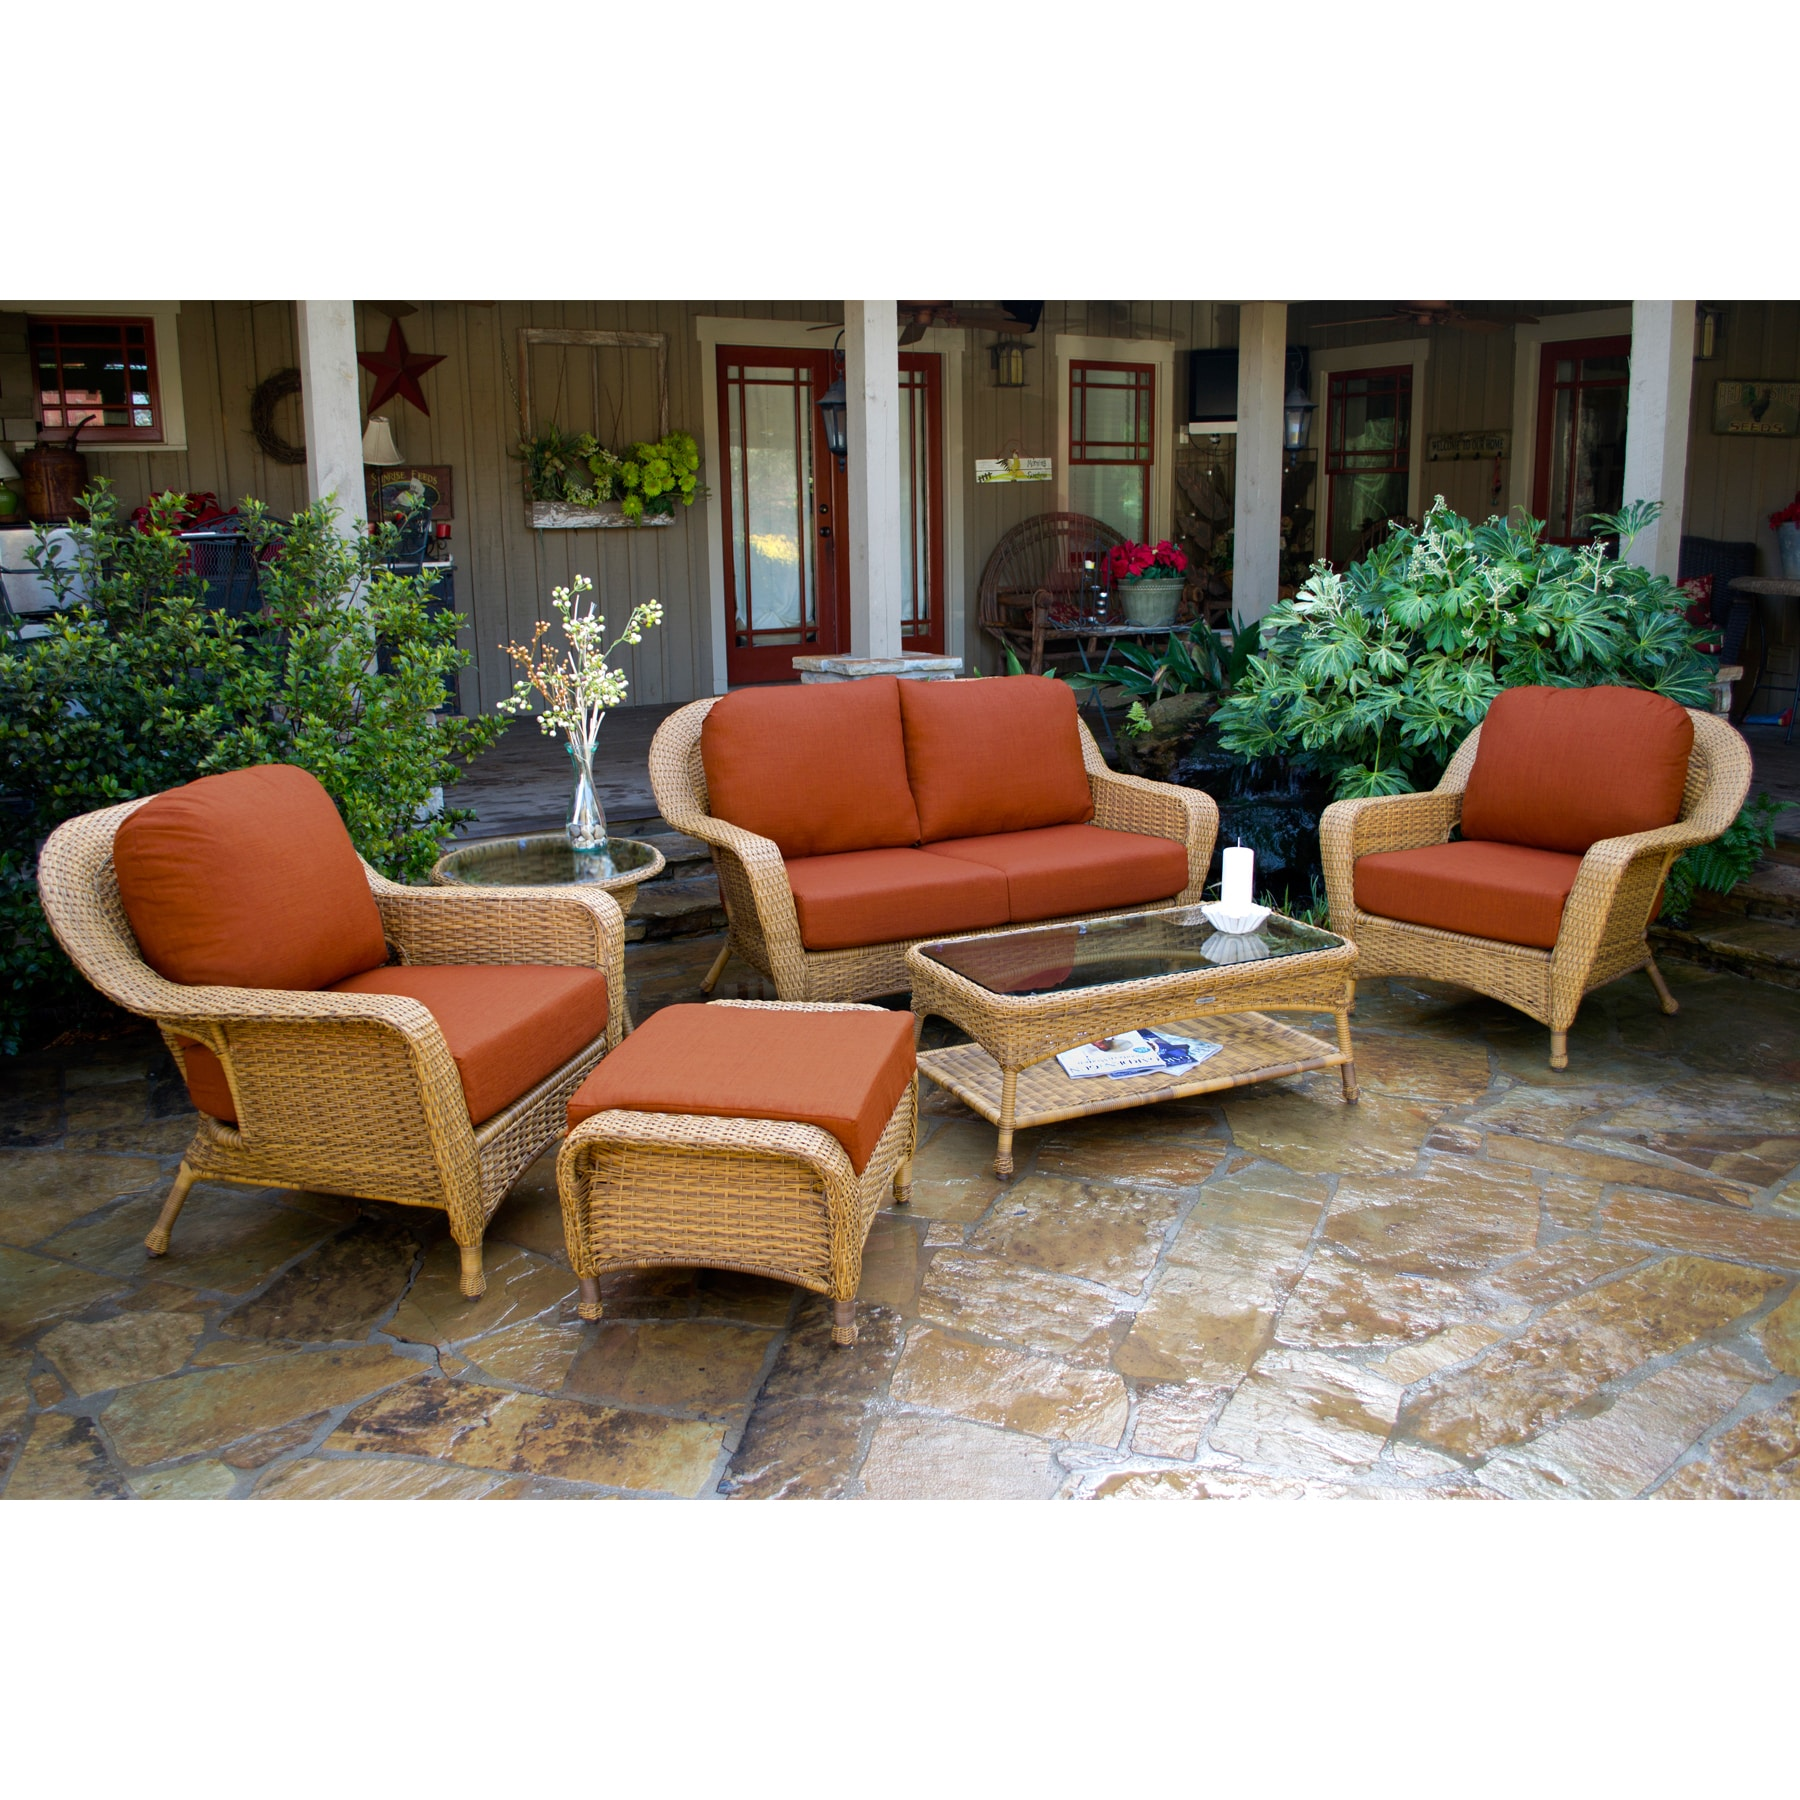 Lexington Light Brown Wicker Outdoor 6 Piece Patio Furniture Set With Cushions